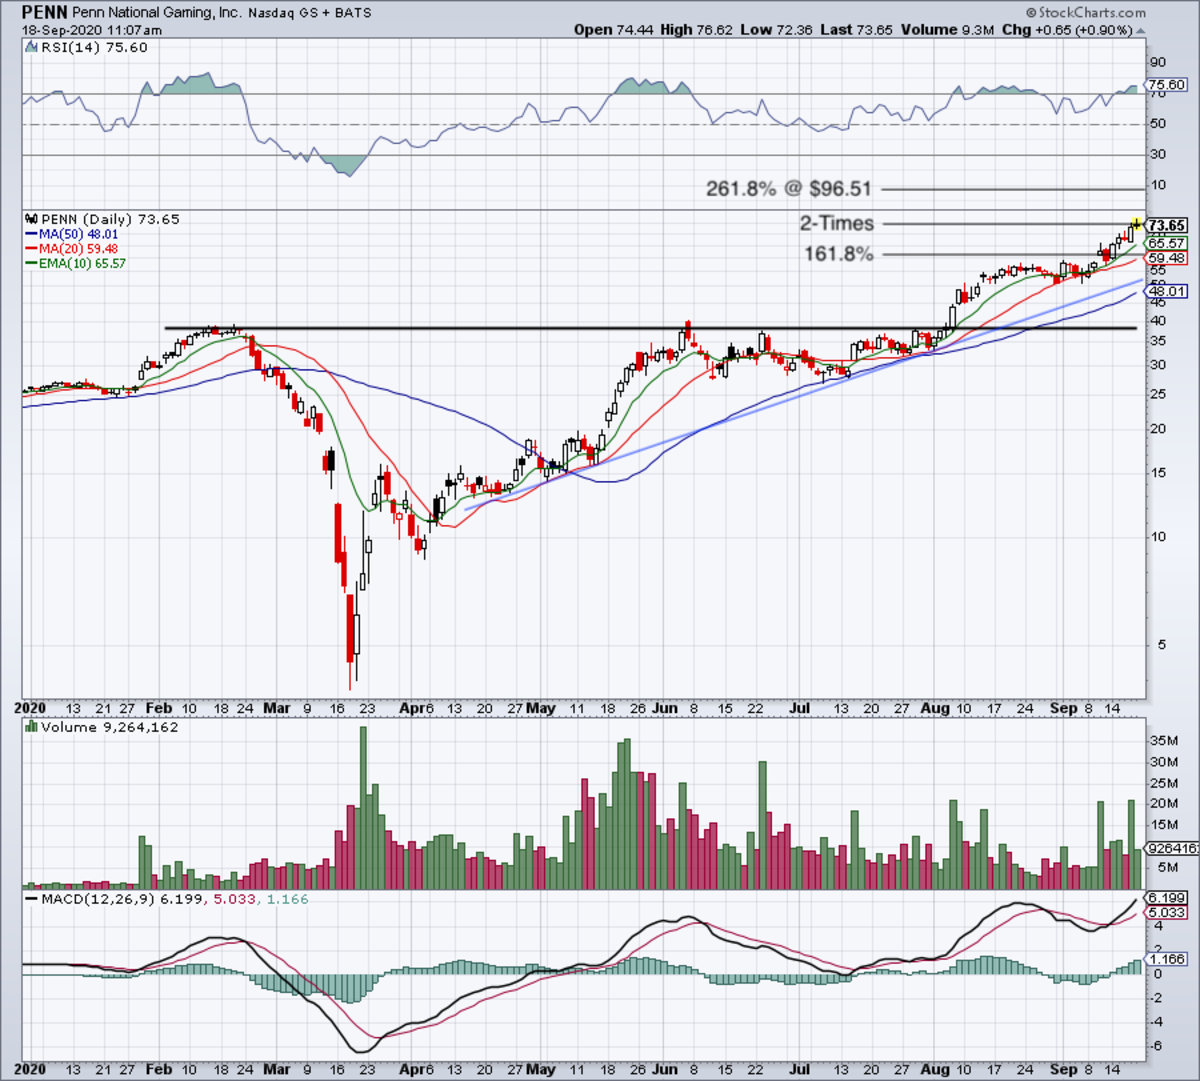 Daily chart of Penn stock.